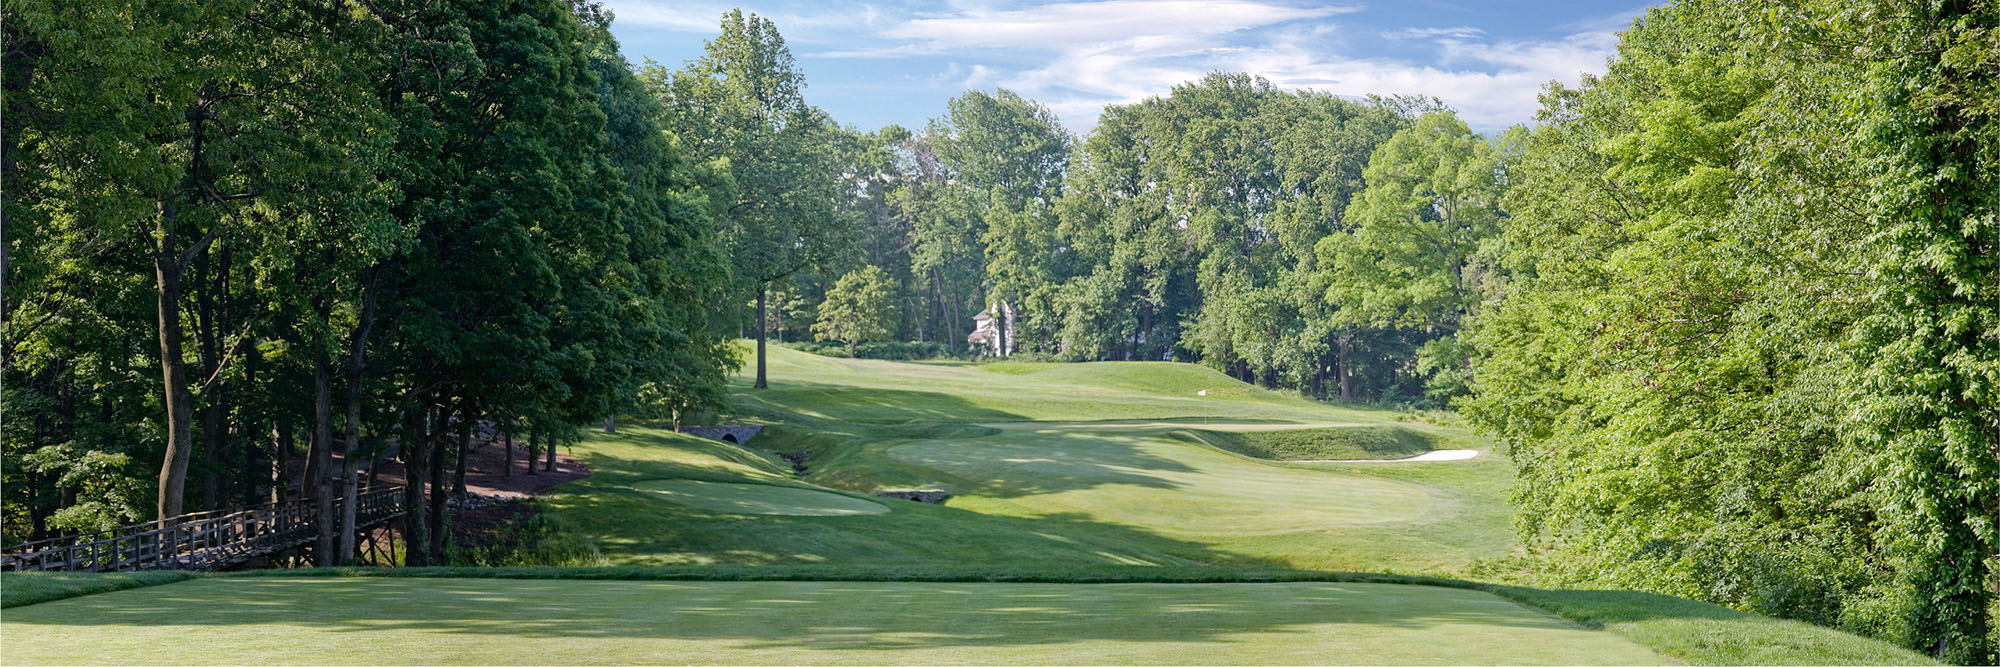 Golf Course Image - Essex County Country Club No. 11